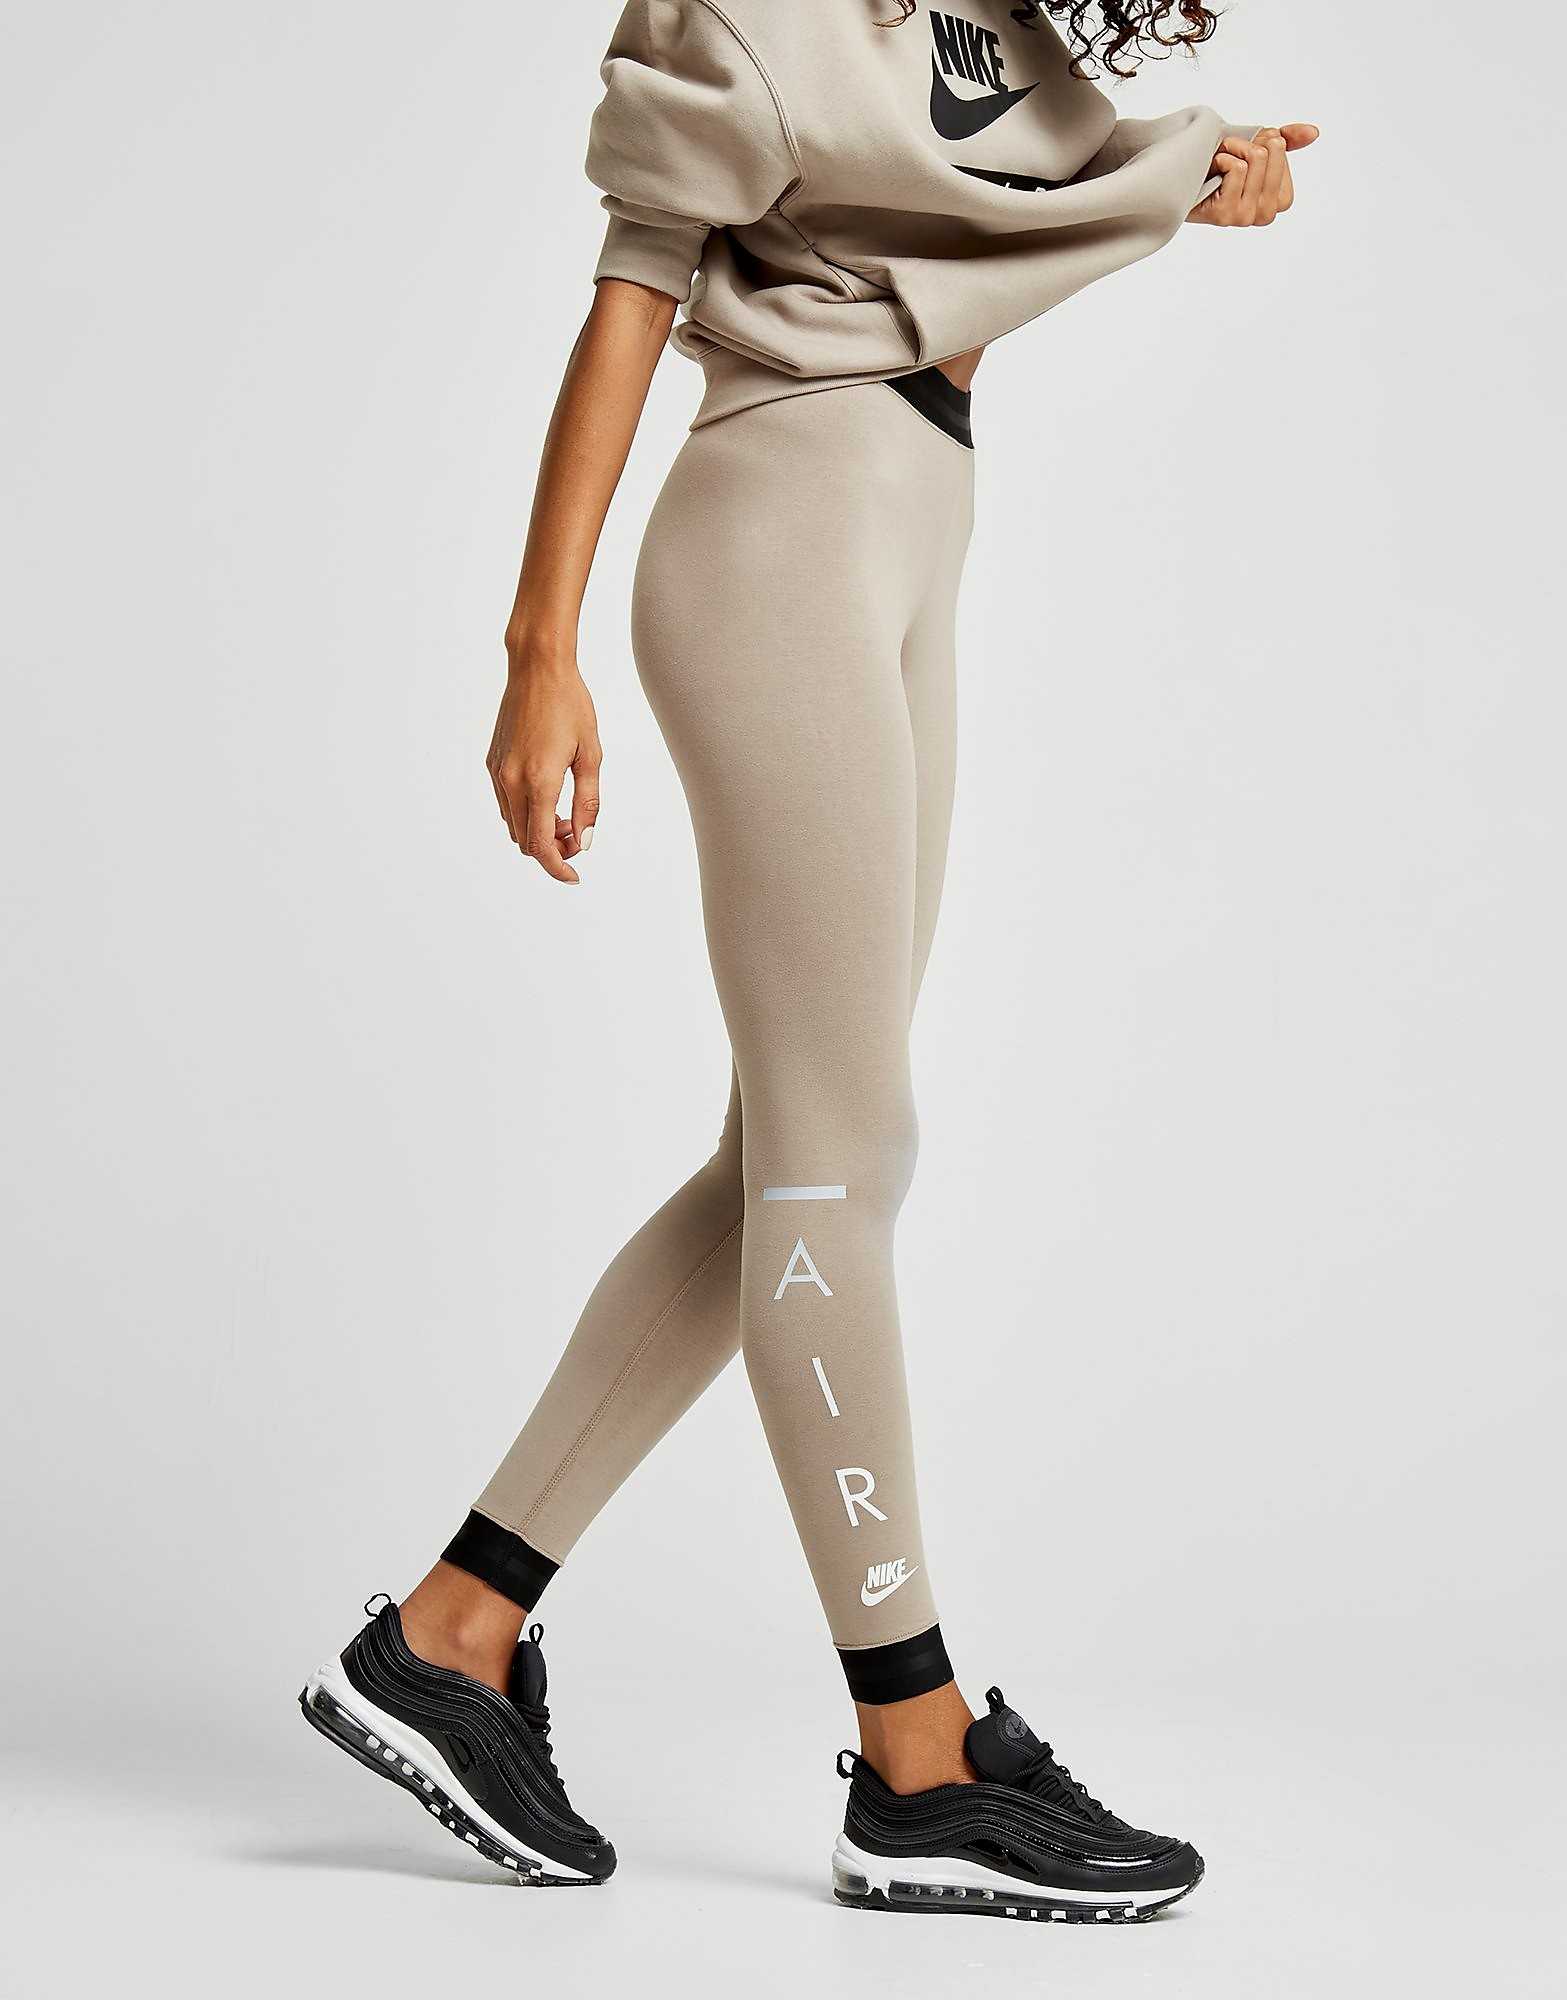 Nike Air High Waist Leggings